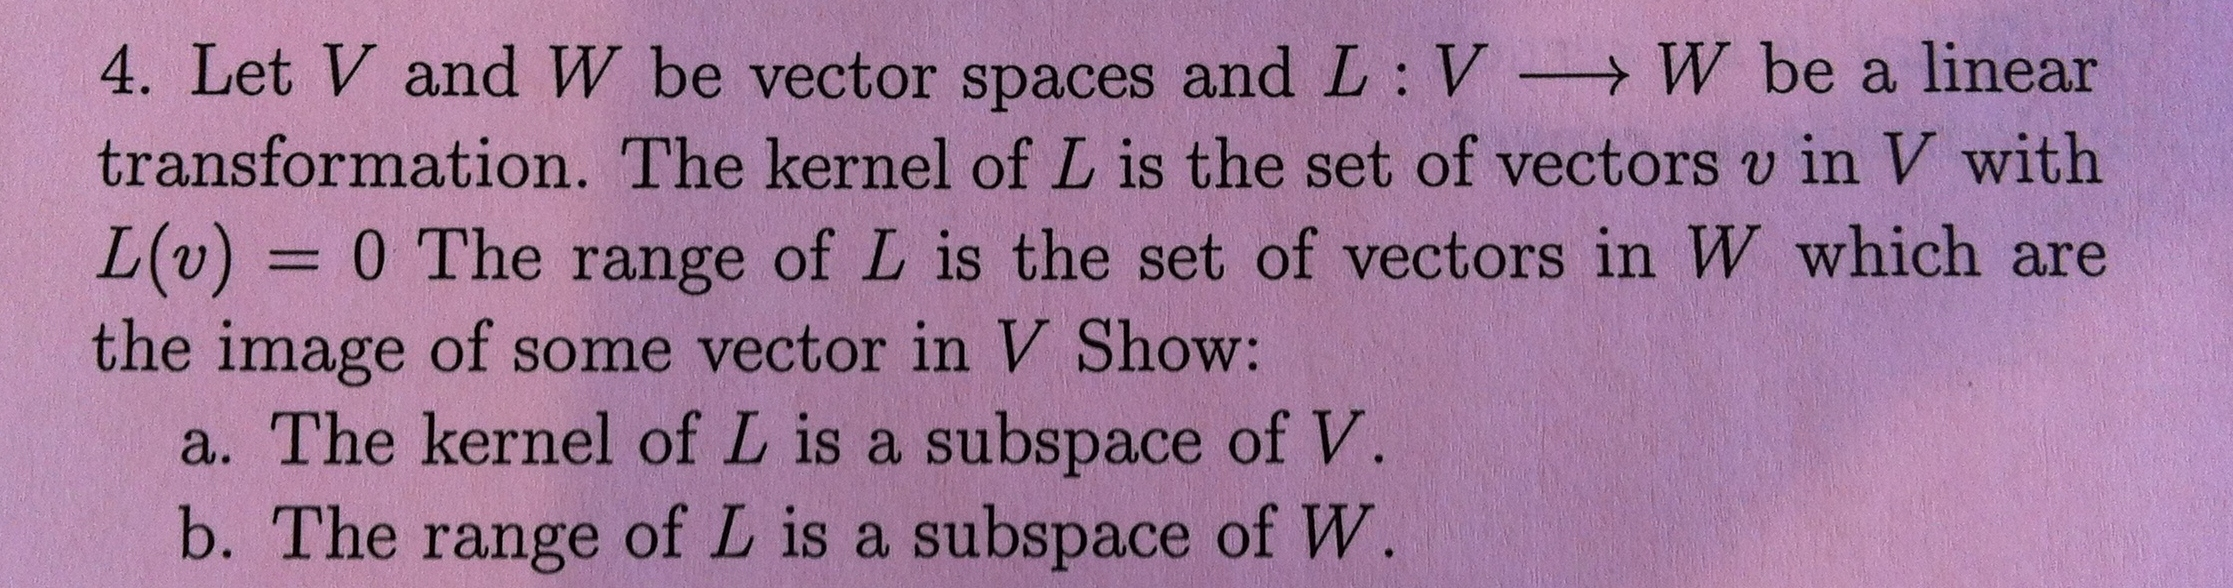 Let V and W be vector spaces and L : V rightarrow